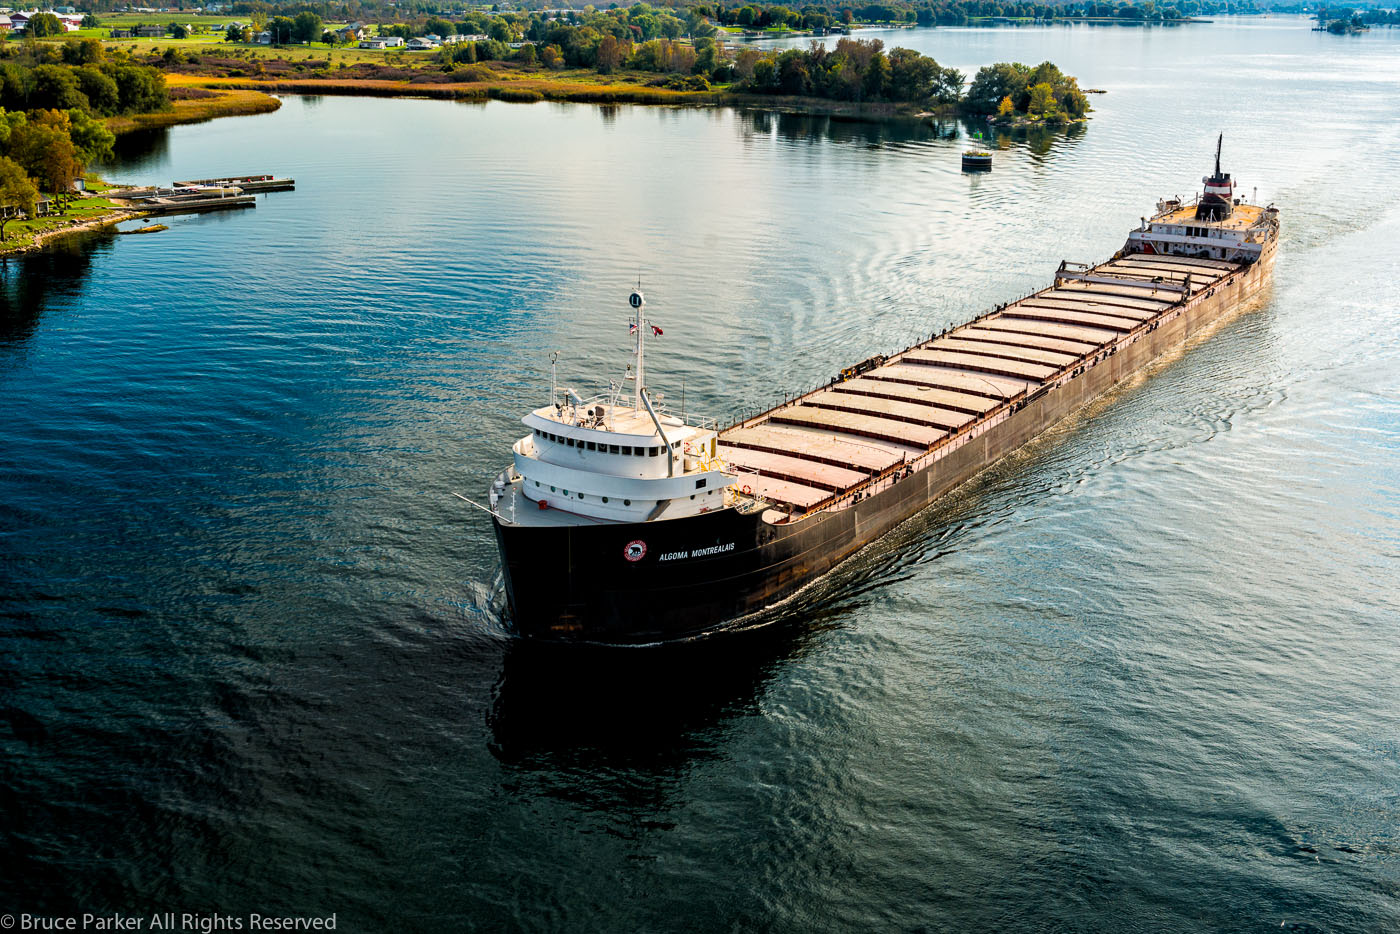 Pictures-of-the-1000-Islands-4121.jpg